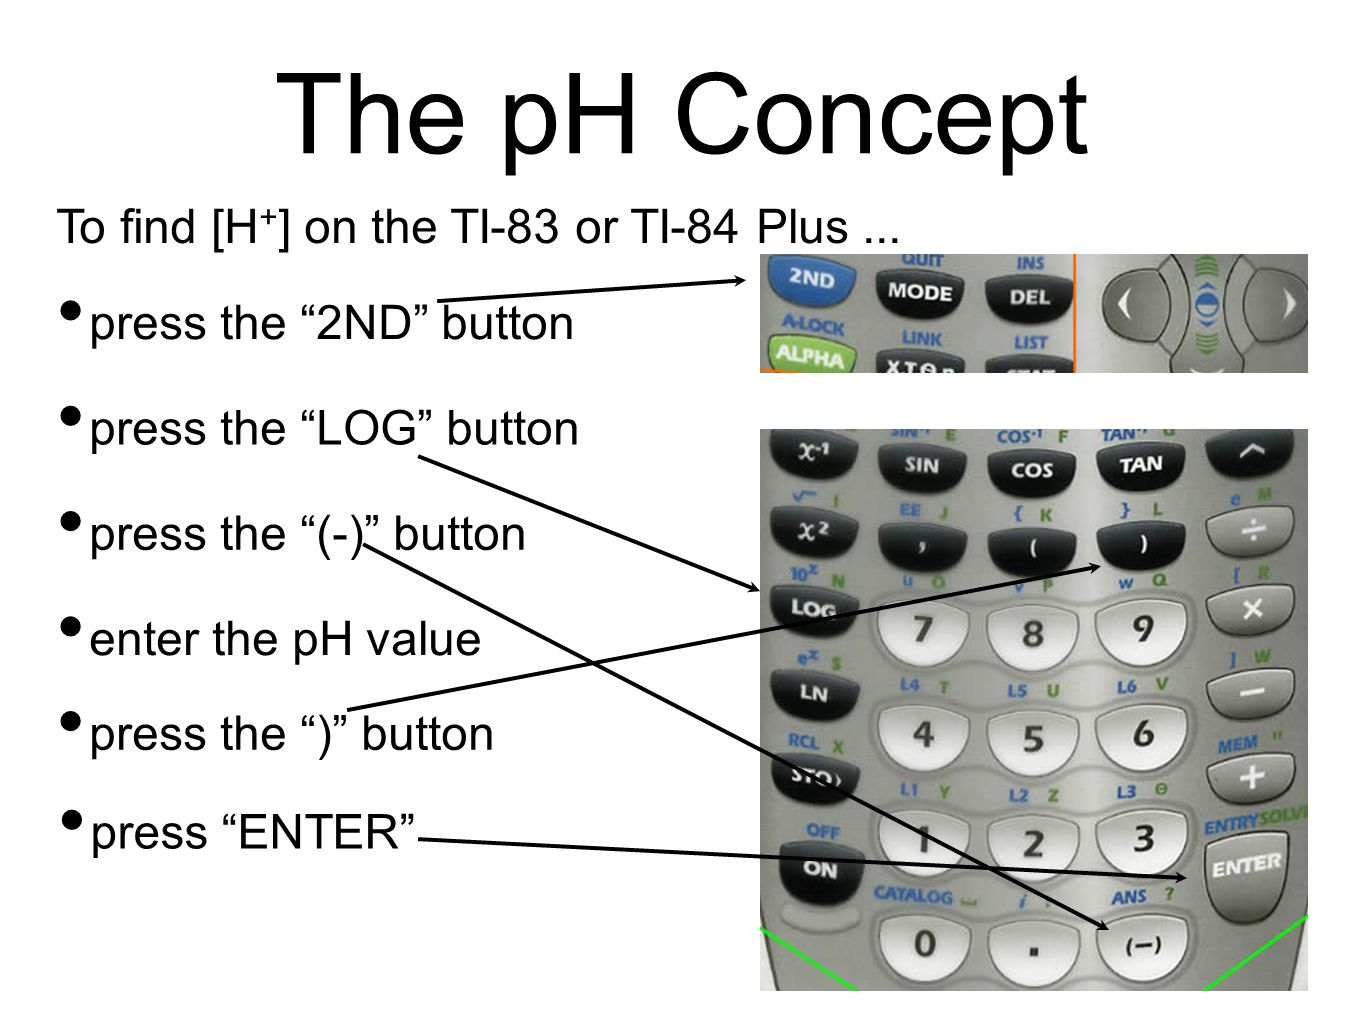 The pH Concept To find [H + ] on the TI-83 or TI-84 Plus...